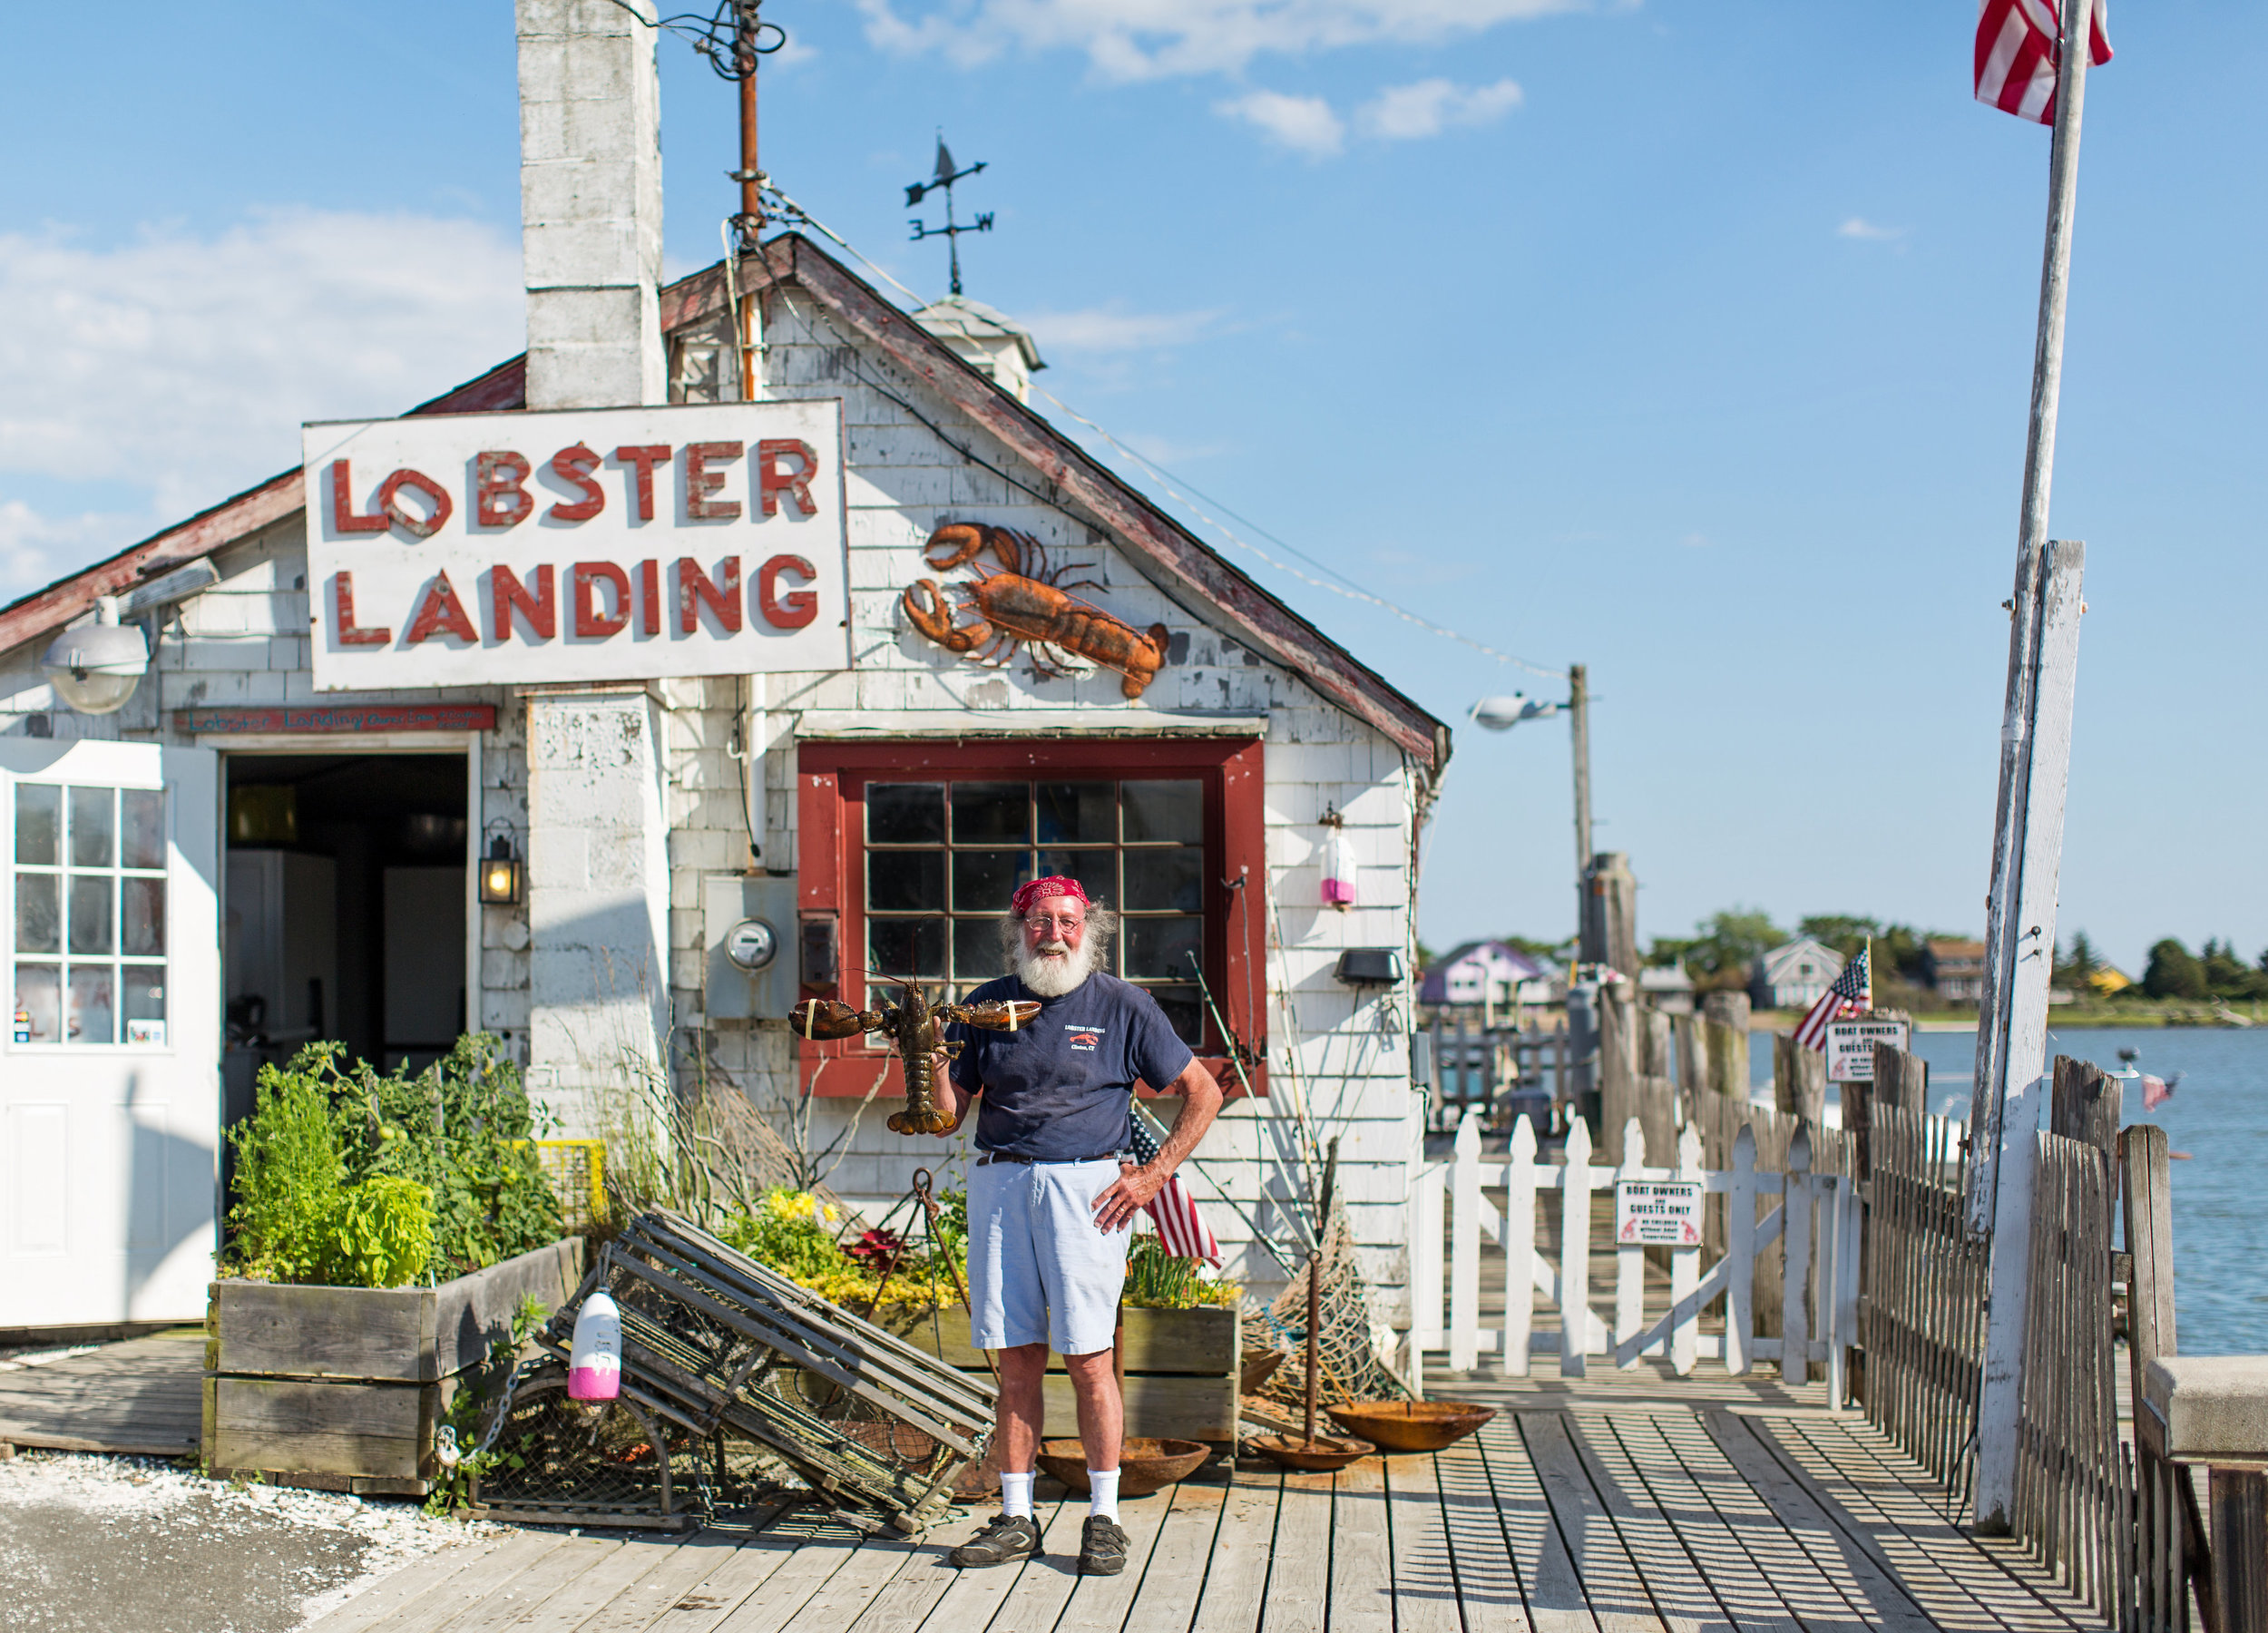 Lobster Landing in Clinton, Connecticut is owned by Enea Bacci. It is a must for a good lobster roll